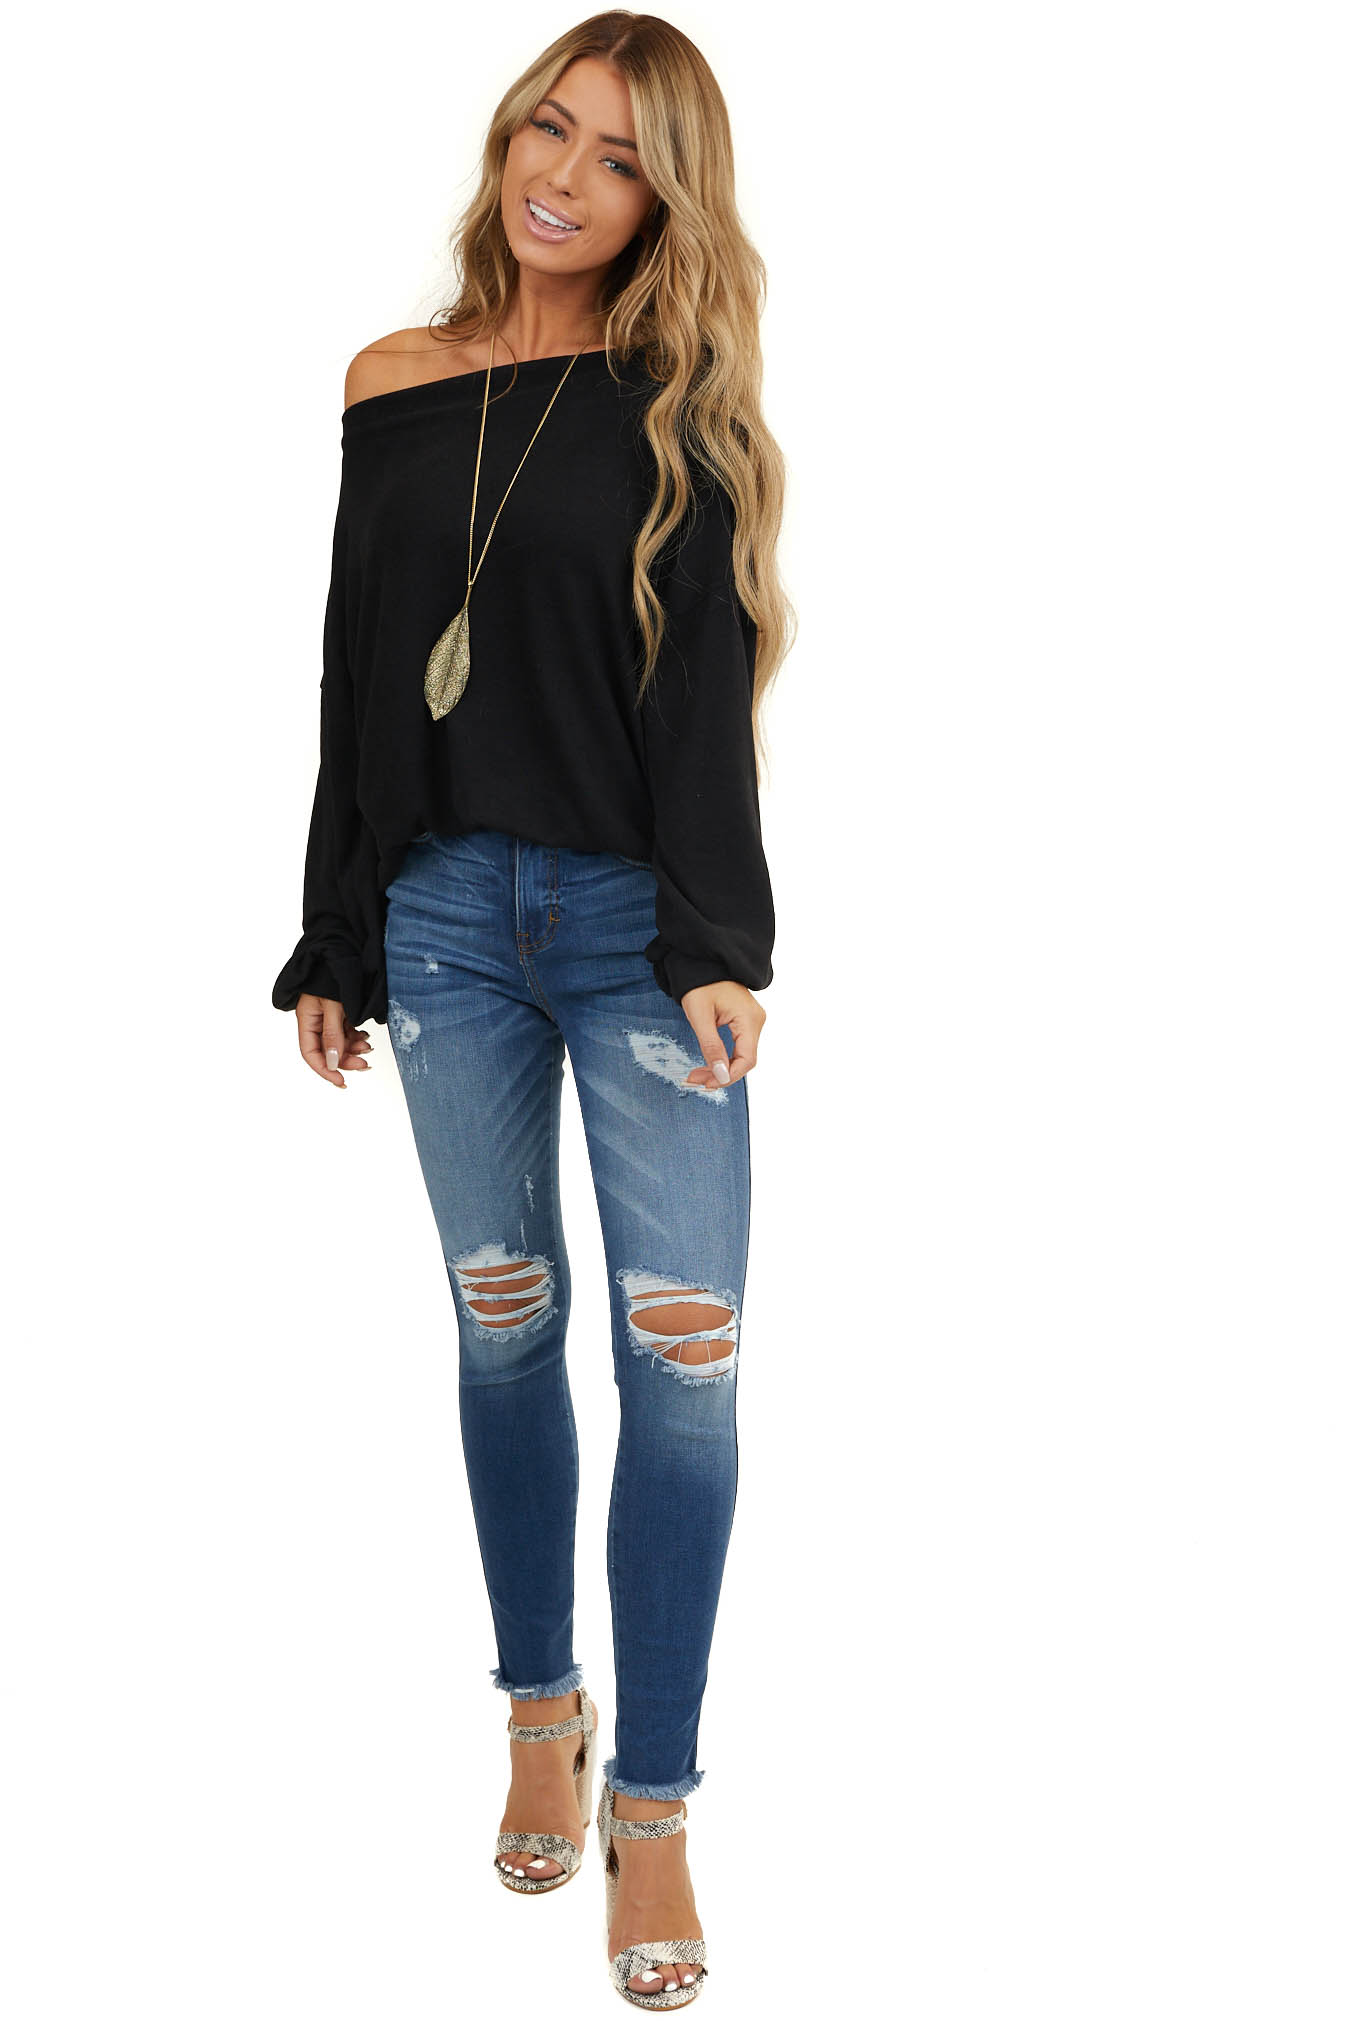 Black Off Shoulder Top with Long Bubble Sleeves